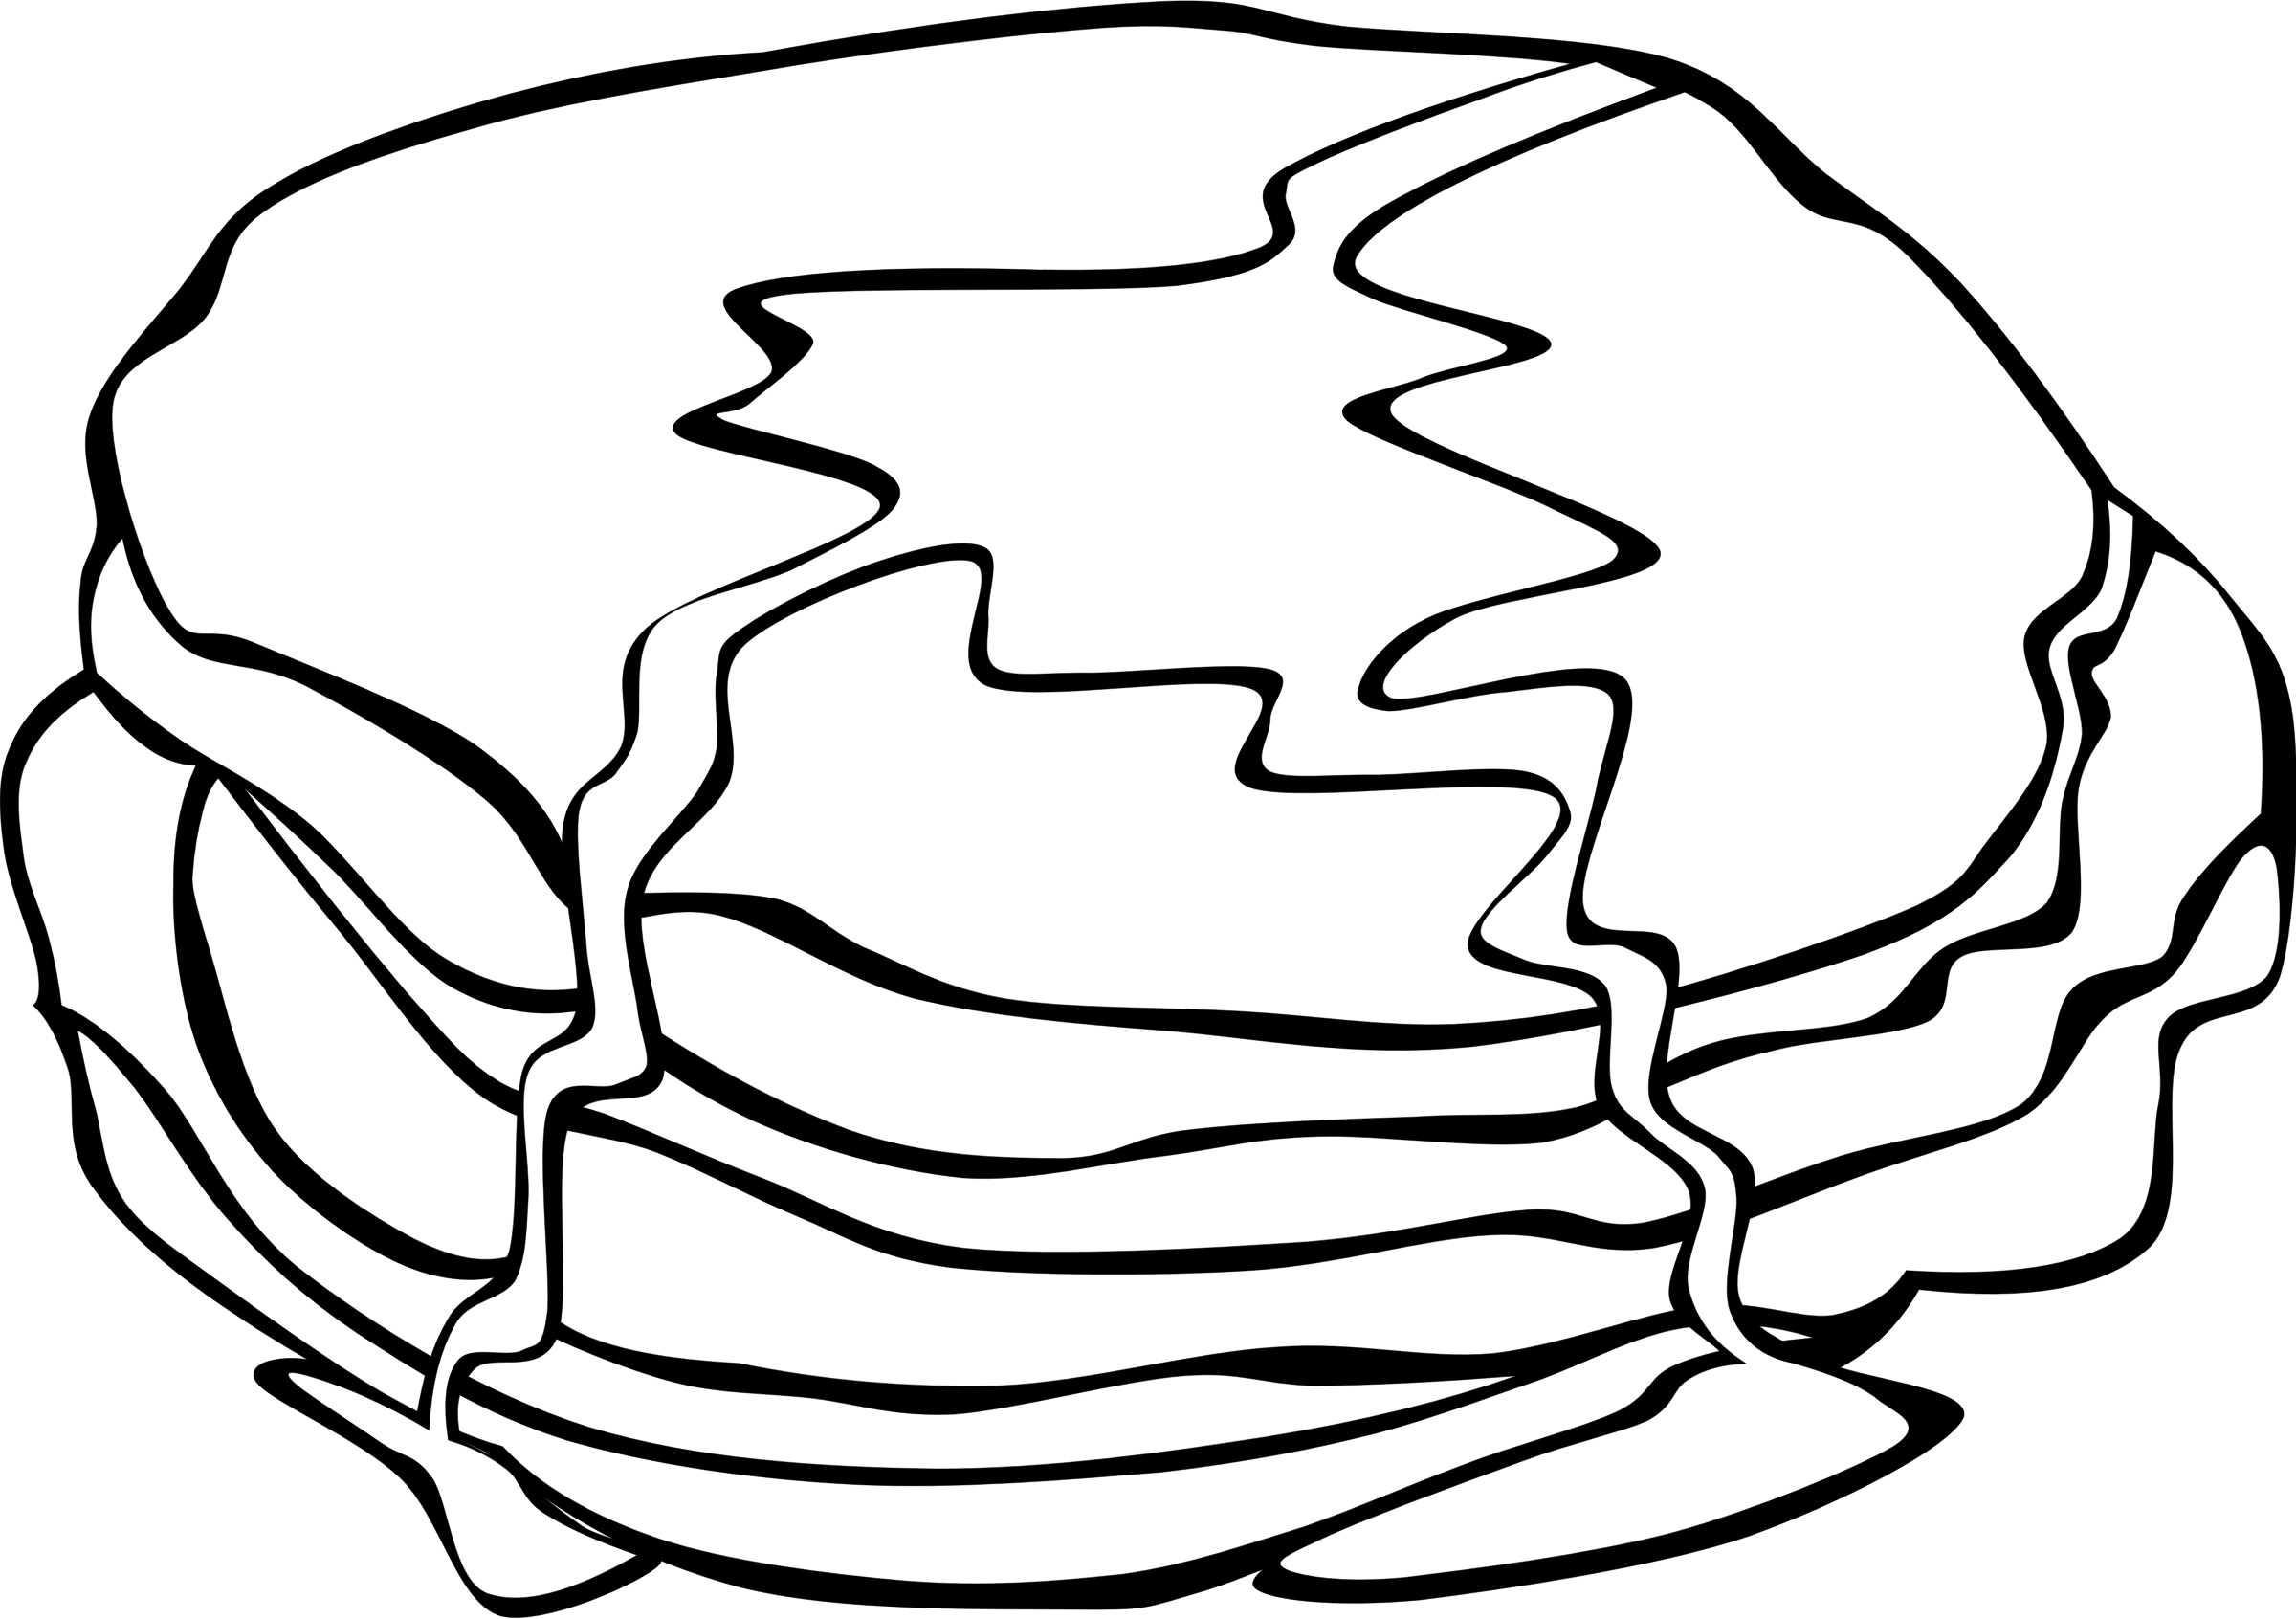 Fast food breakfast pancakes. Ham clipart black and white